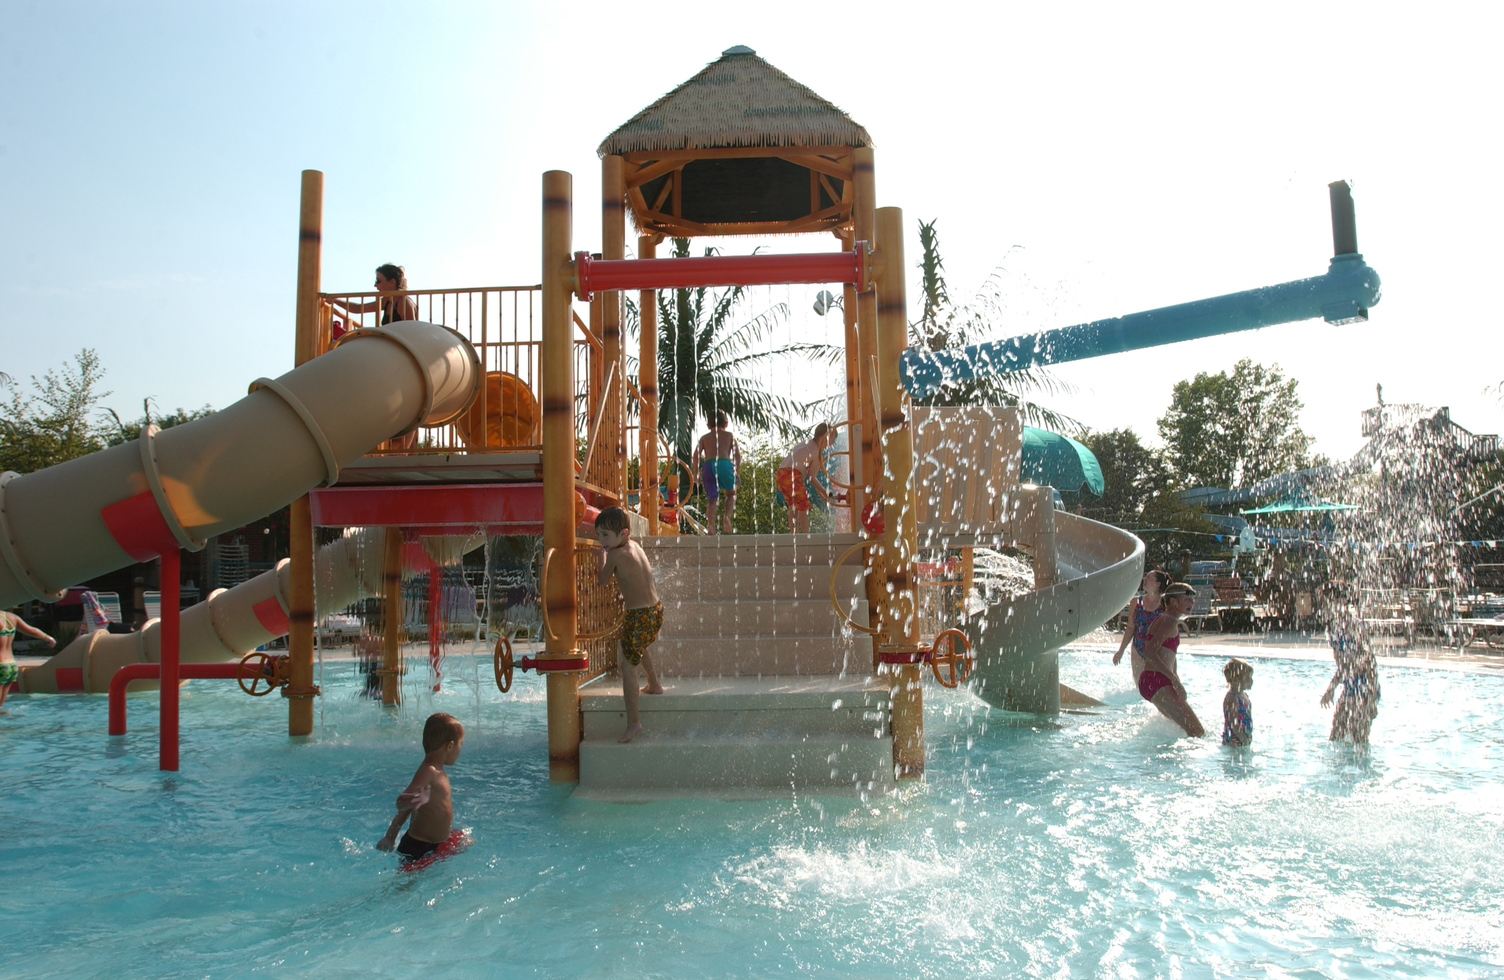 Itasca Caribbean Theme Waterpark | Your Site Name